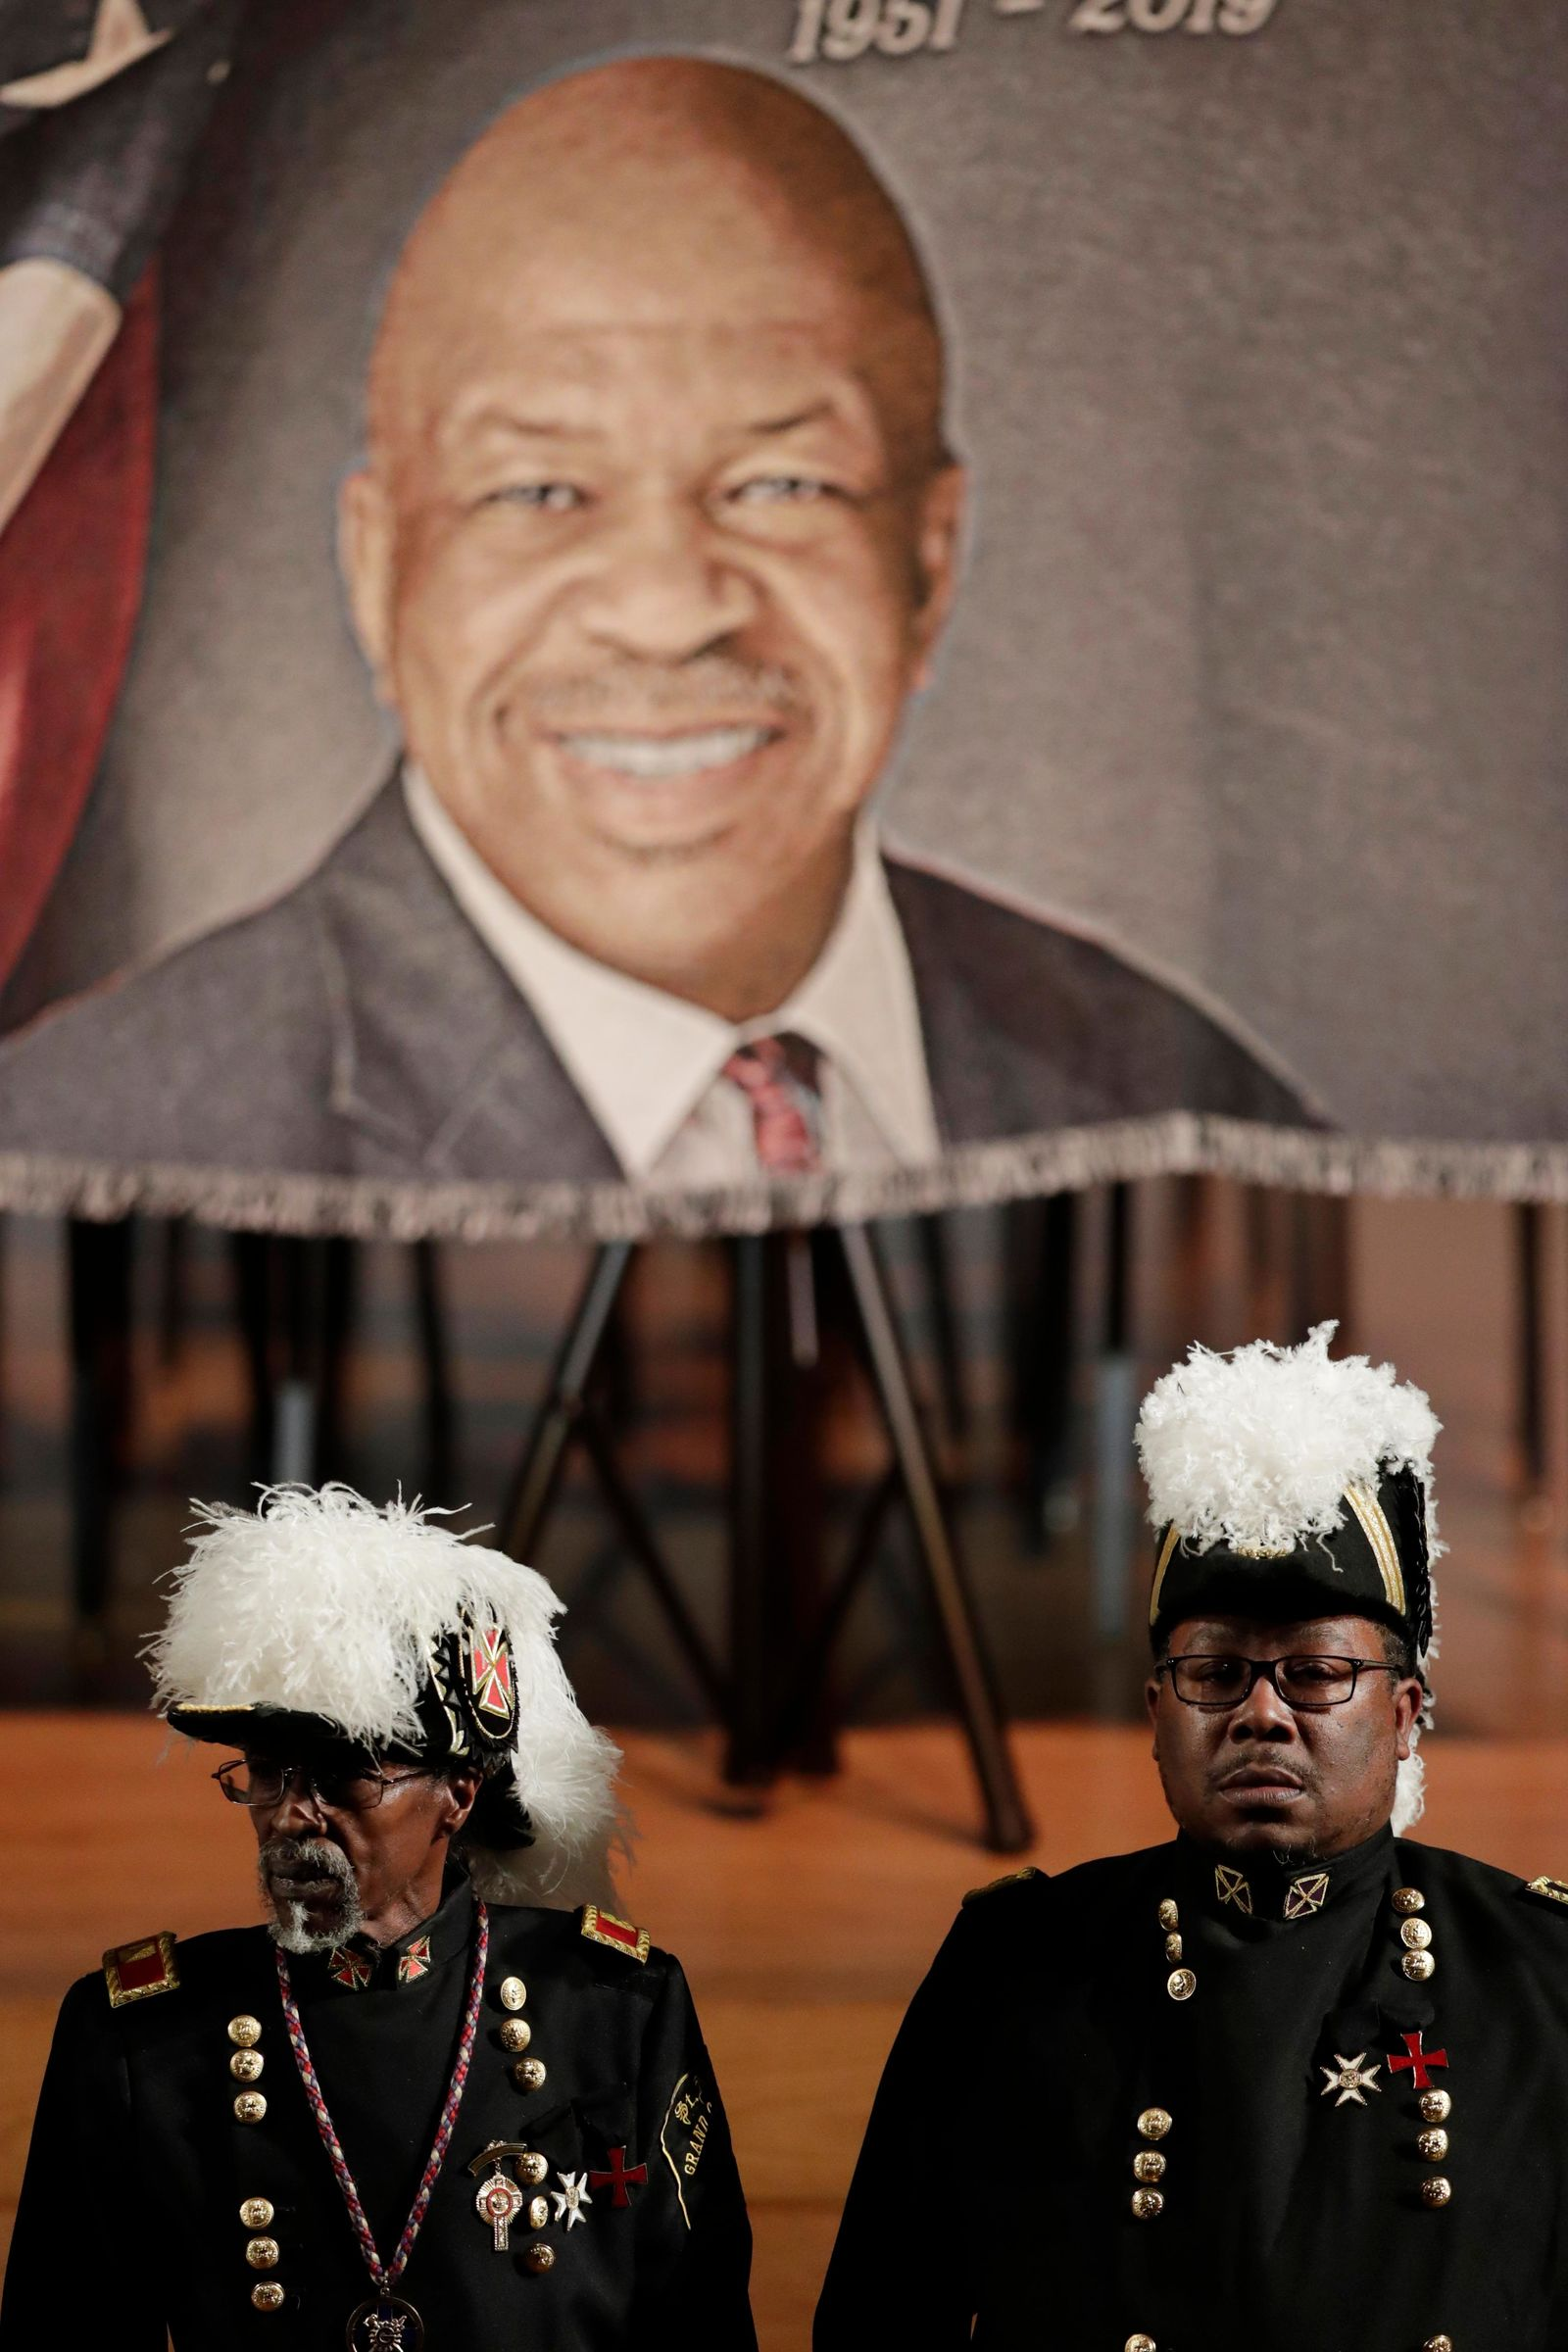 Masonic guards stand in front of an image of the late U.S. Rep. Elijah Cummings during a viewing service at Morgan State University, Wednesday, Oct. 23, 2019, in Baltimore. The Maryland congressman and civil rights champion died Thursday, Oct. 17, at age 68 of complications from long-standing health issues. (AP Photo/Julio Cortez)